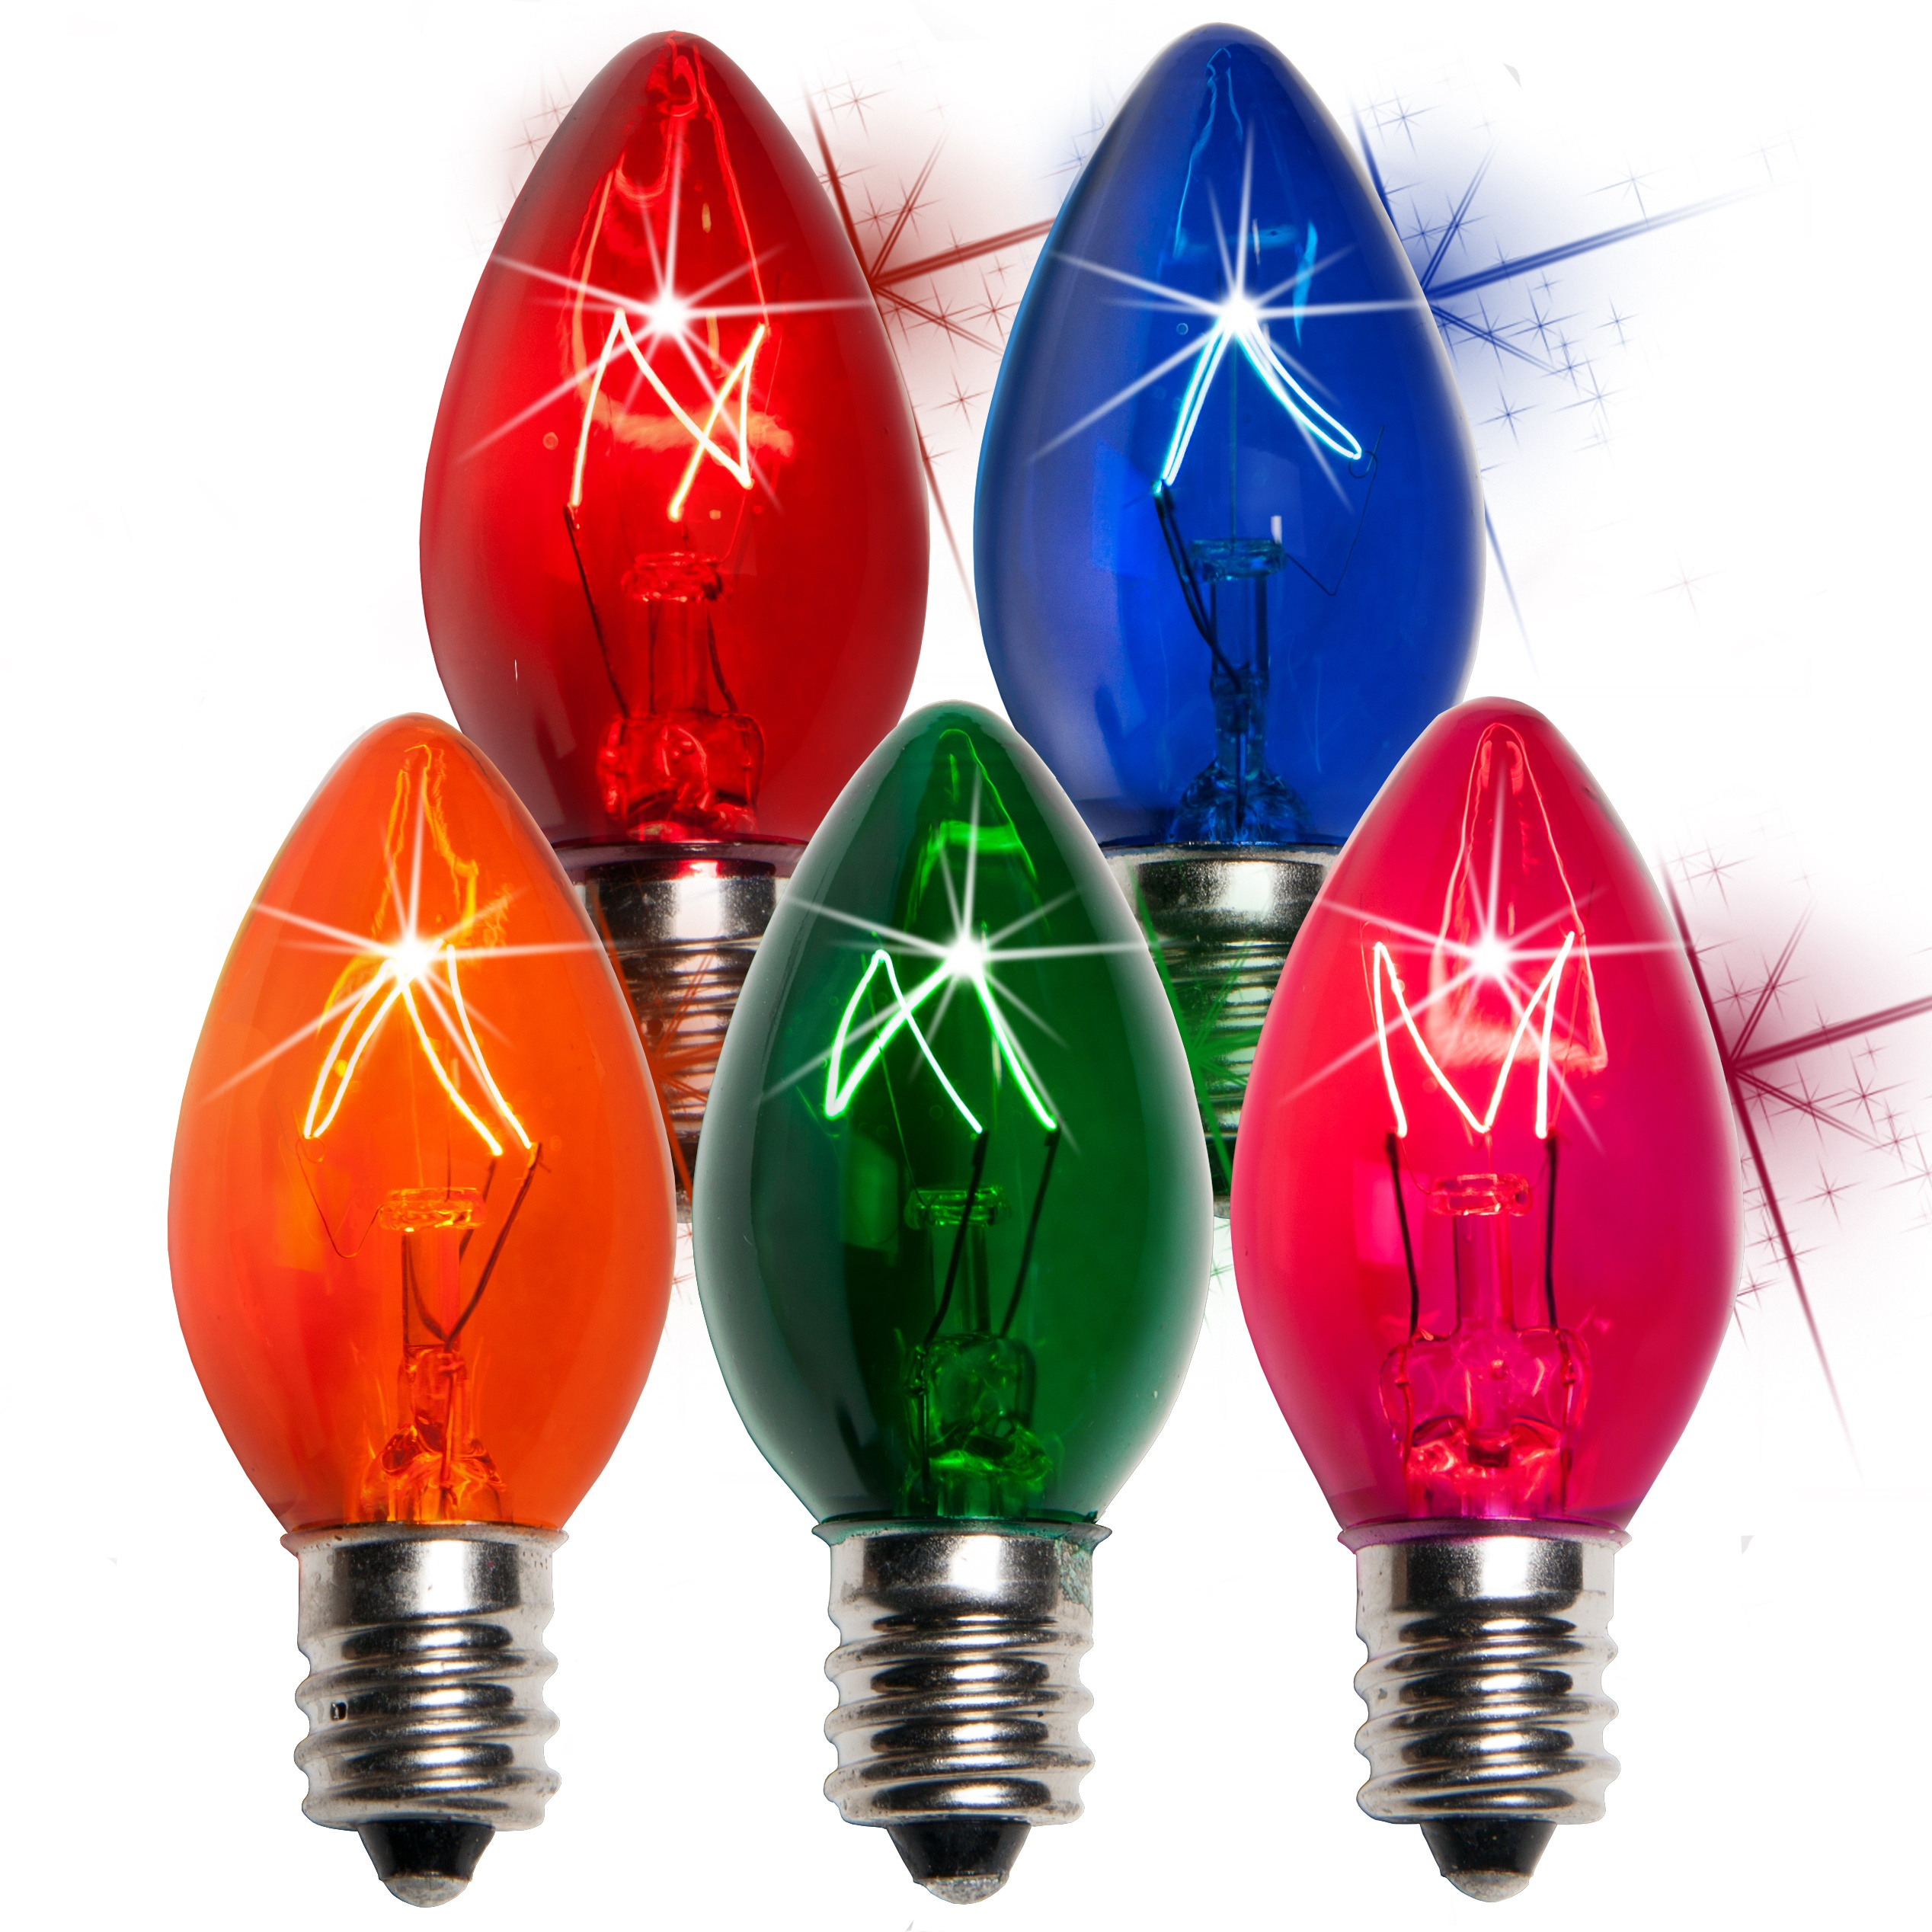 c7 christmas light bulb c7 twinkle multicolor christmas light bulbs 7 watt